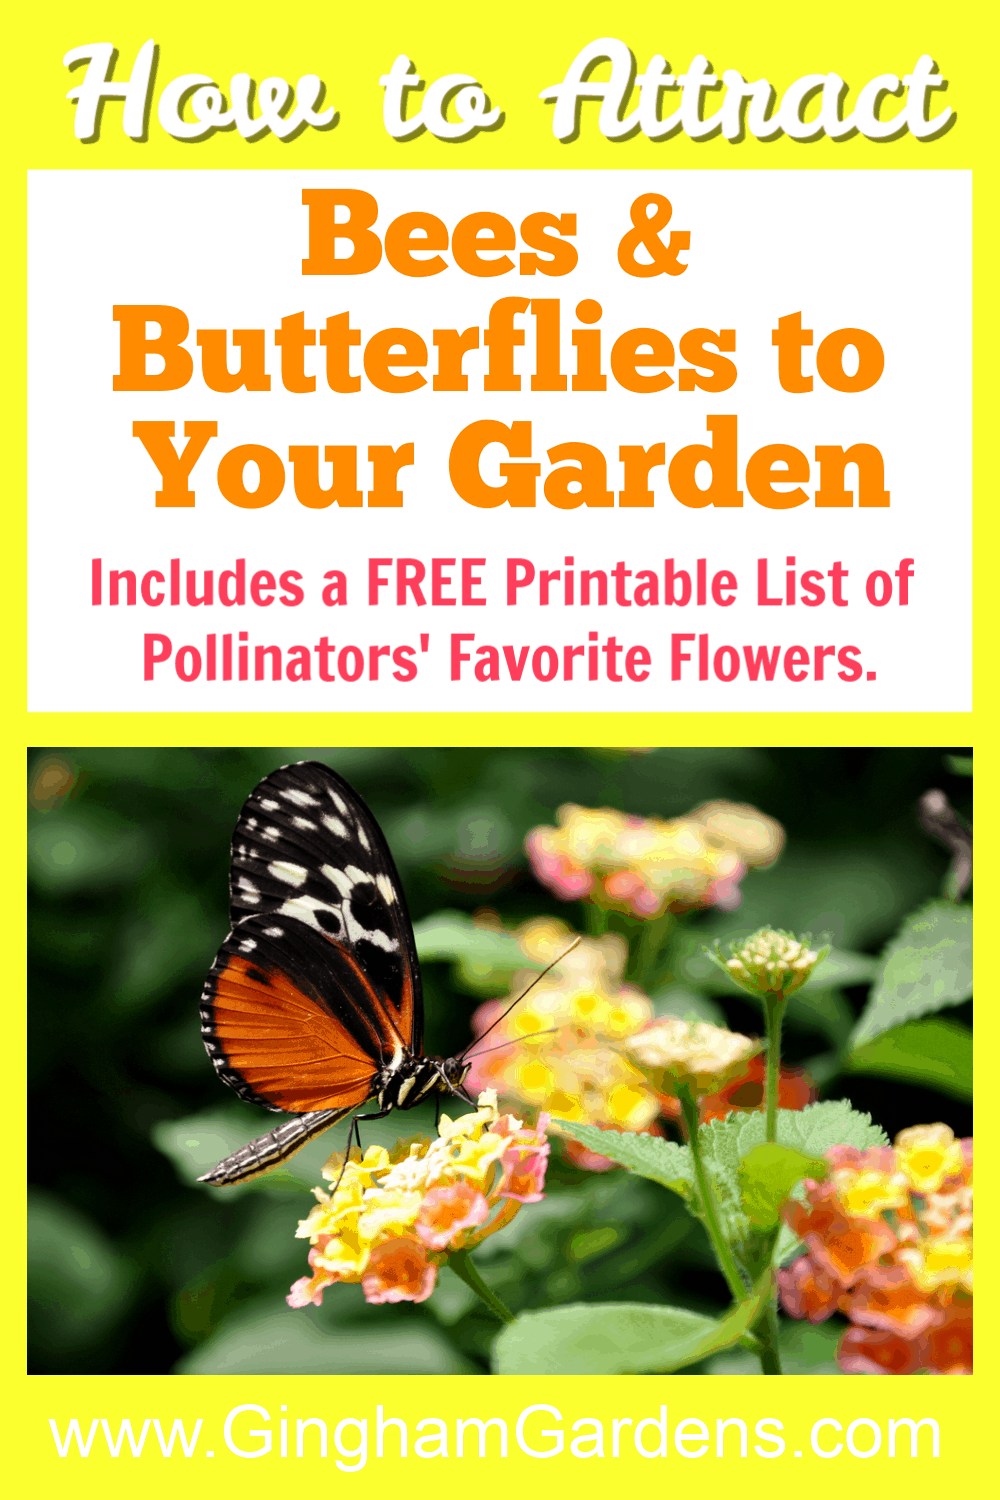 Image of butterfly on flower with text overlay - How to Attract Bees & Butterflies to your Garden